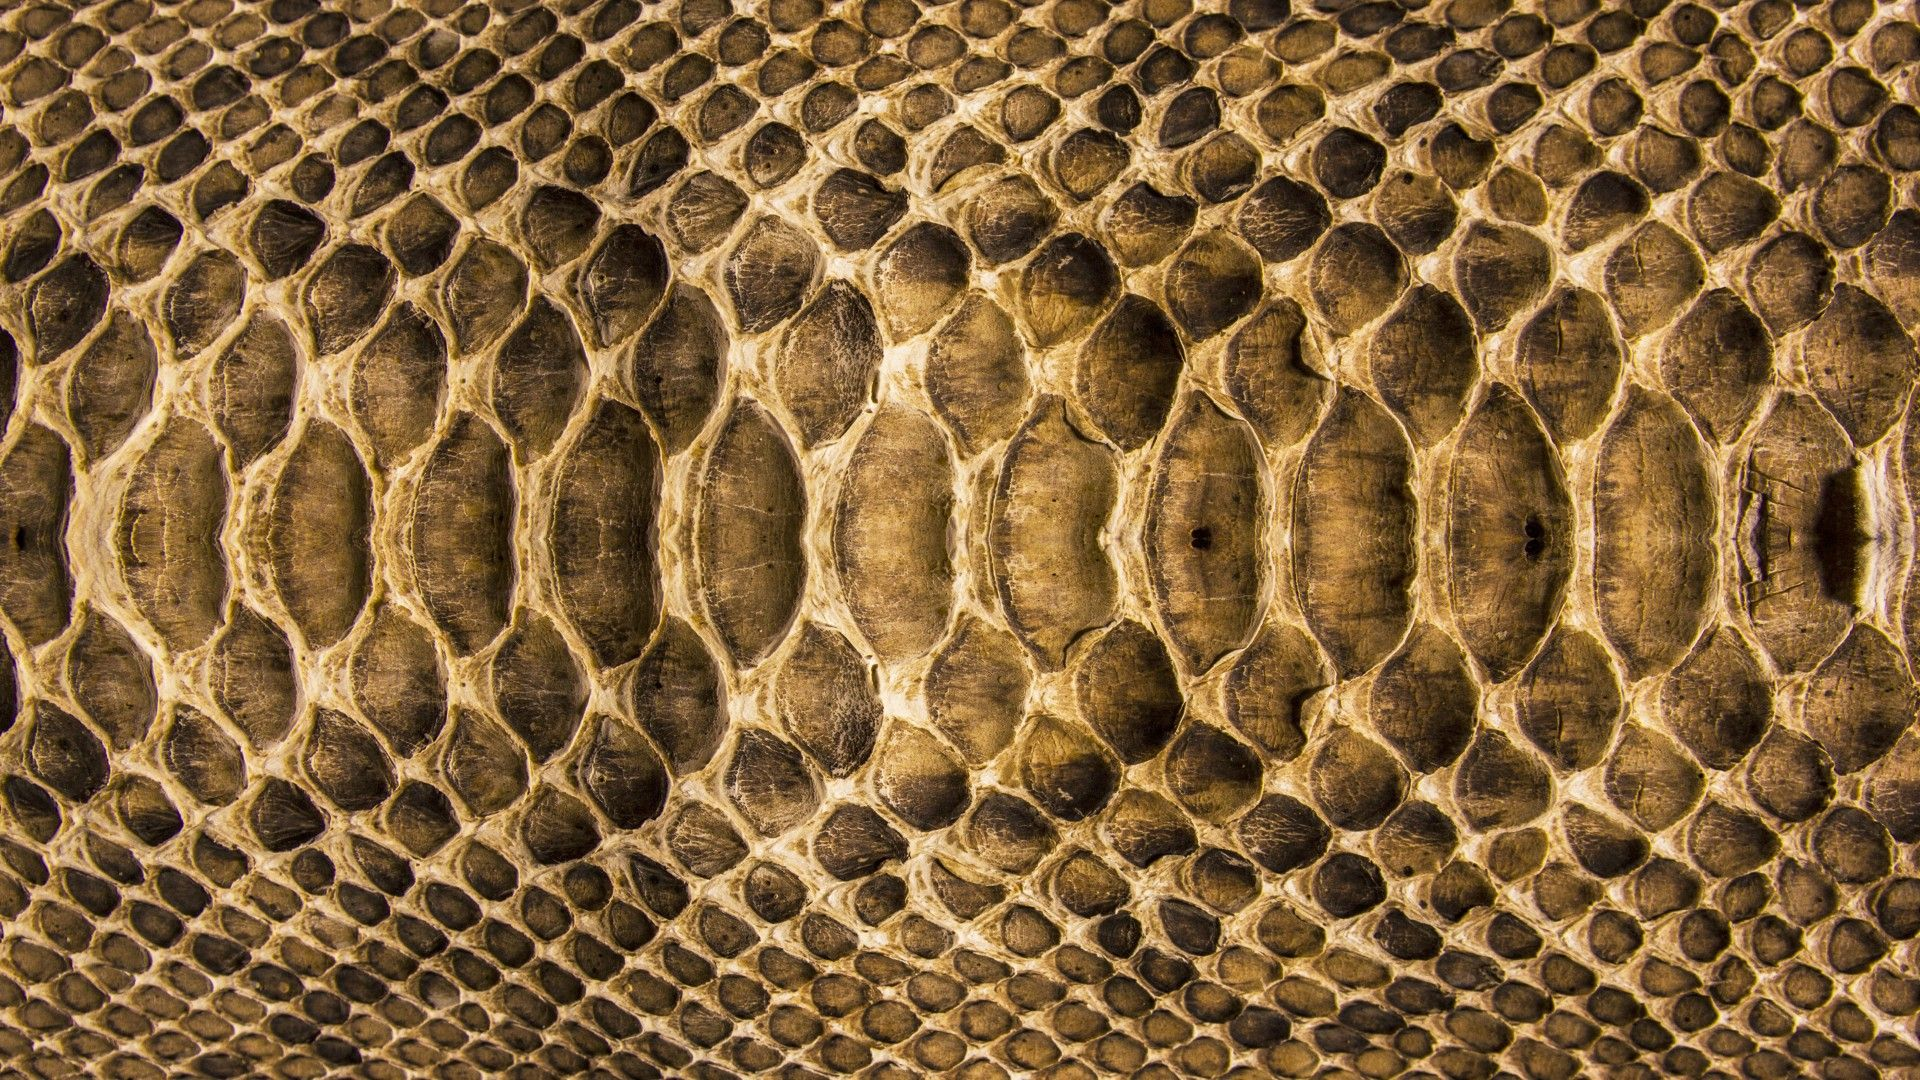 Snakeskin Wallpaper – Find Out Why It Is So Cool